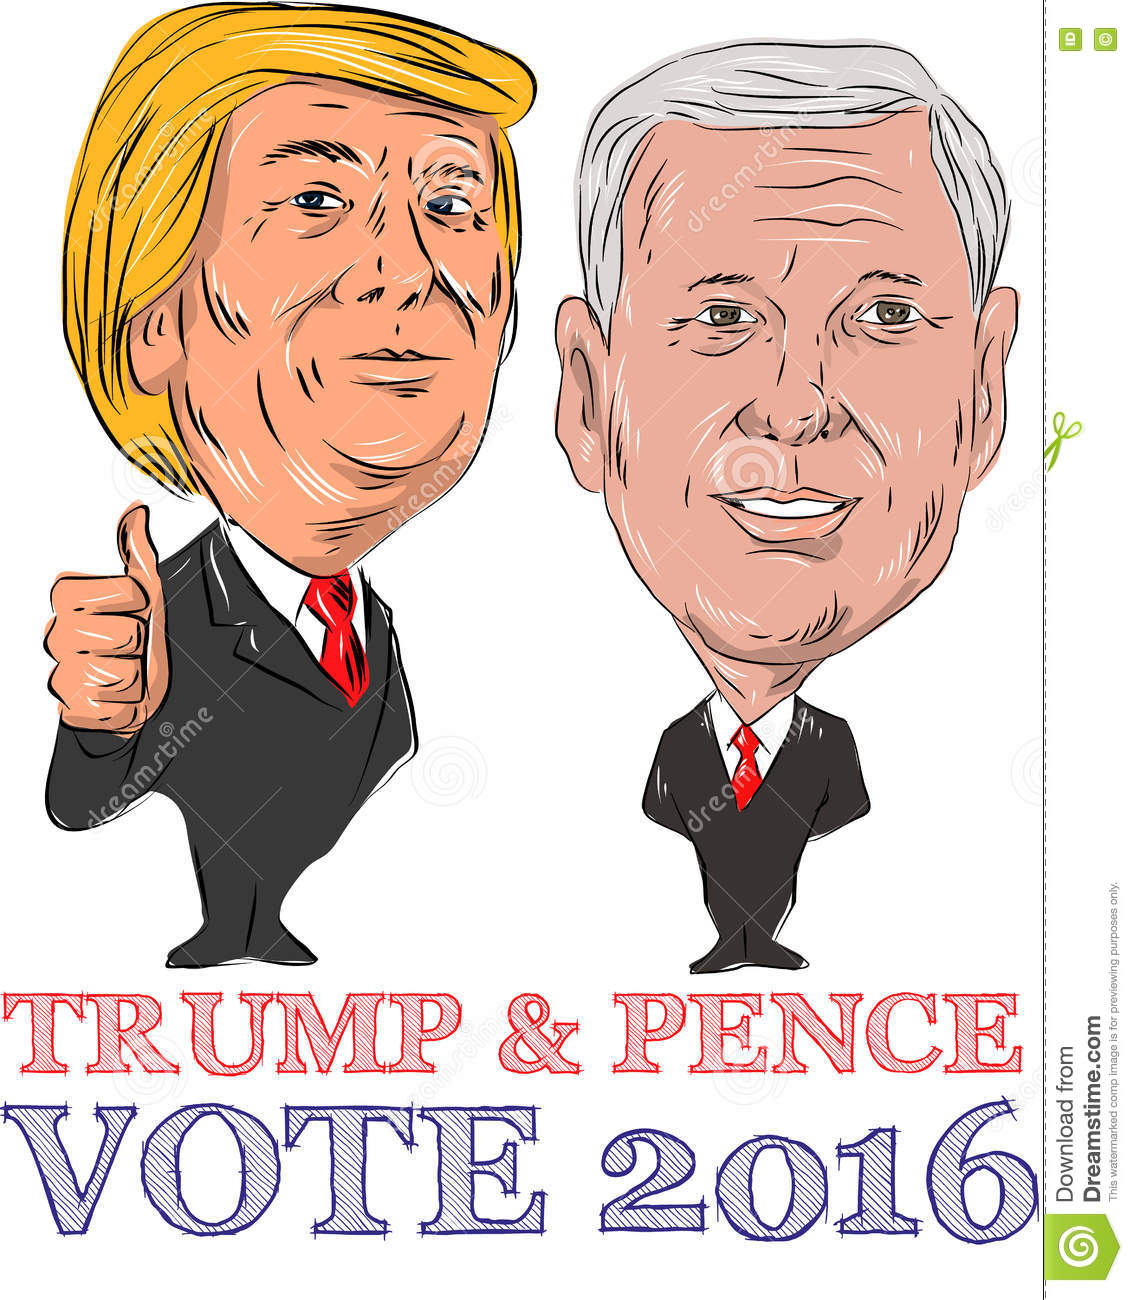 Trump And Pence Vote 2016 Editorial Photo.